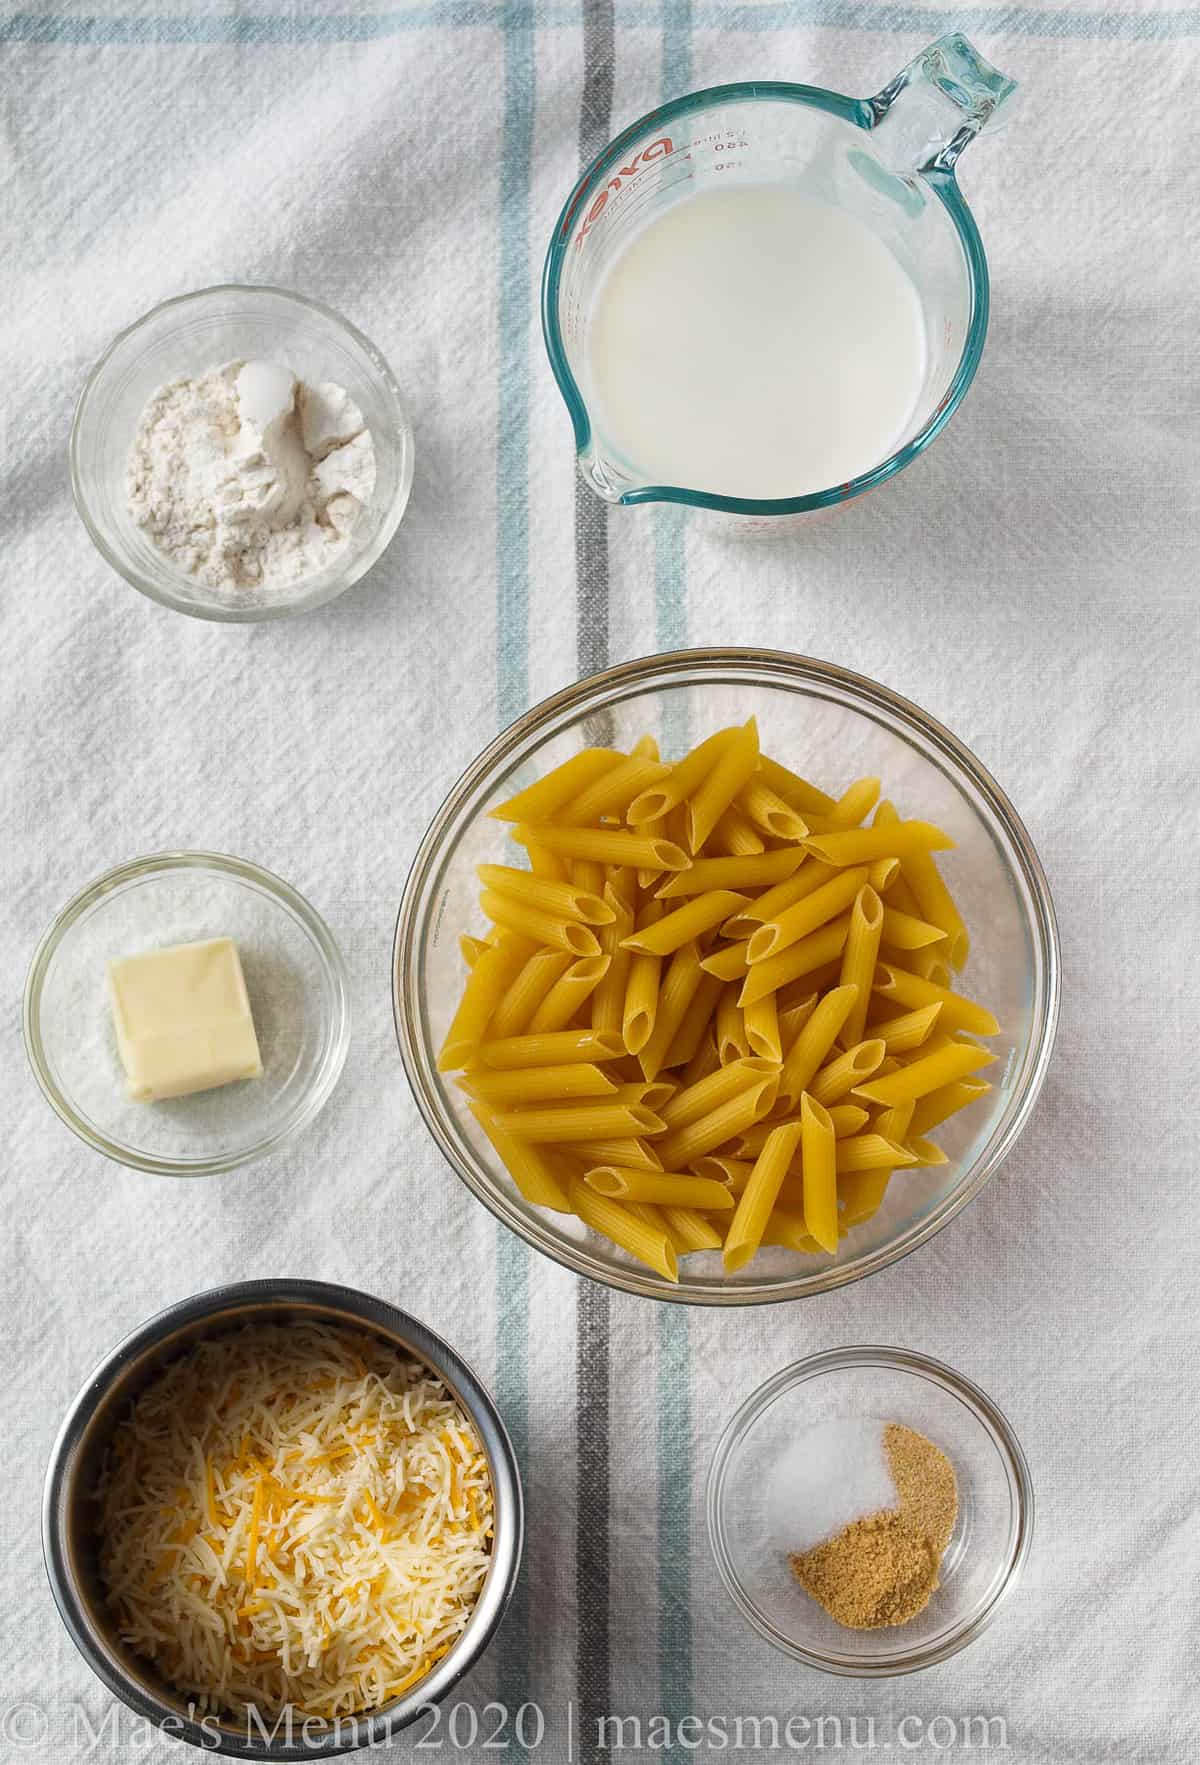 All the ingredients for homemade  healthy macaroni and cheese.